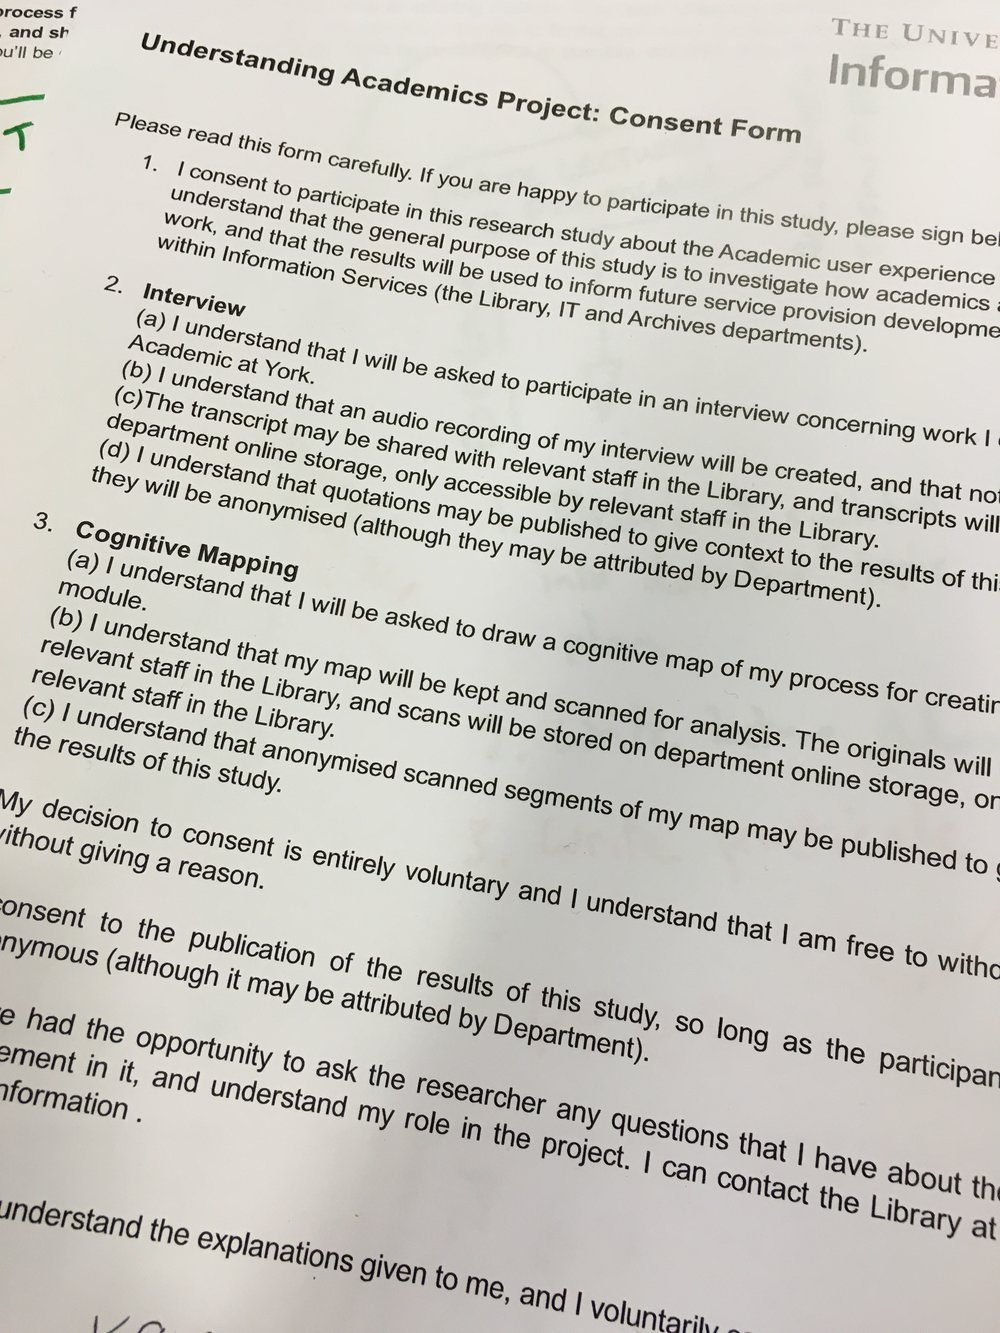 One of the consent forms from the project